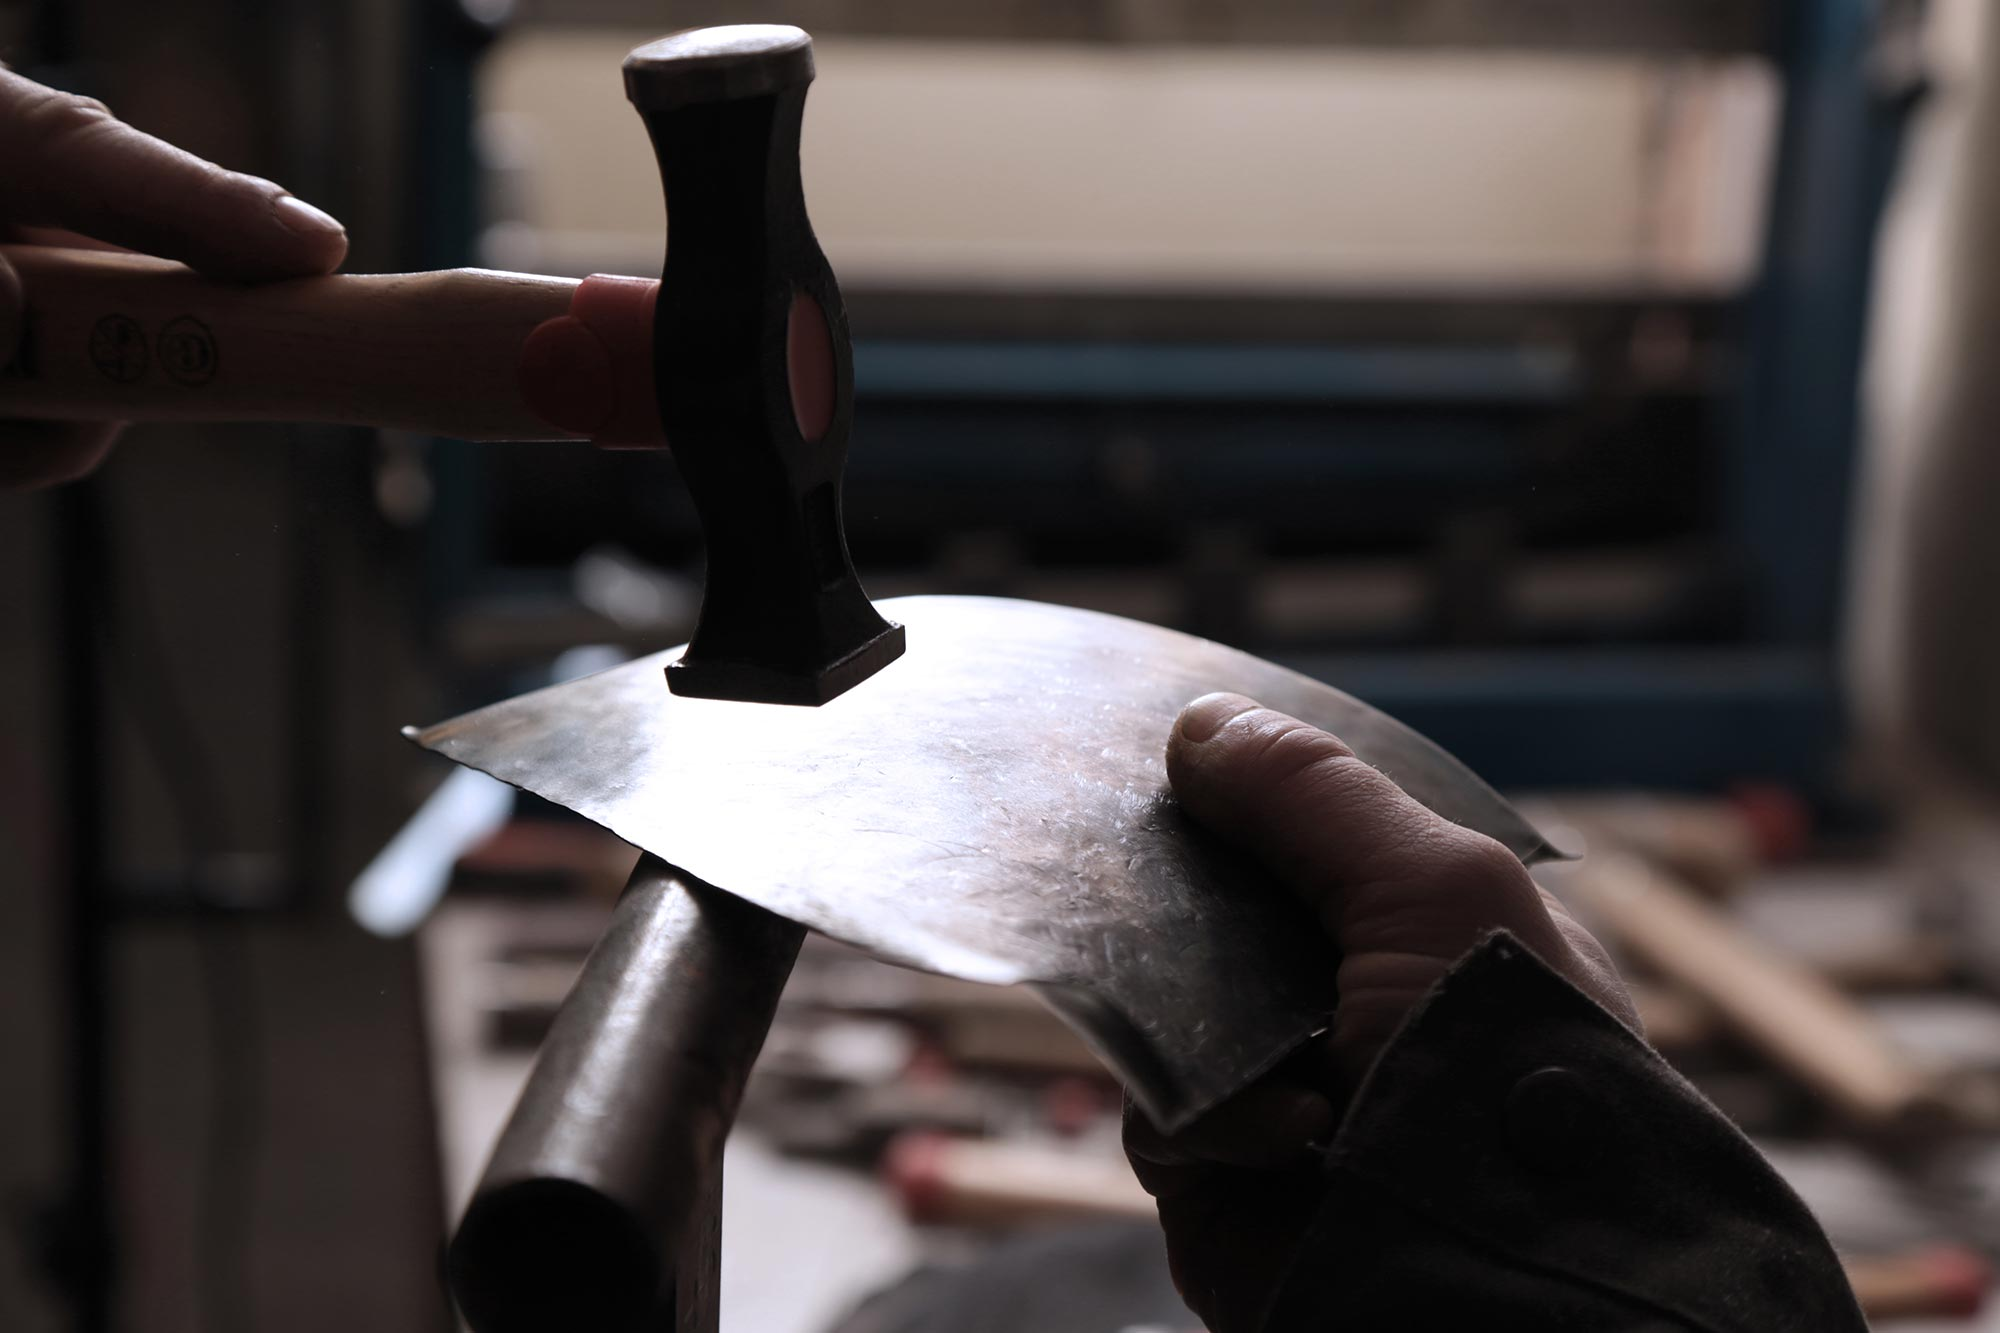 Into the workshop